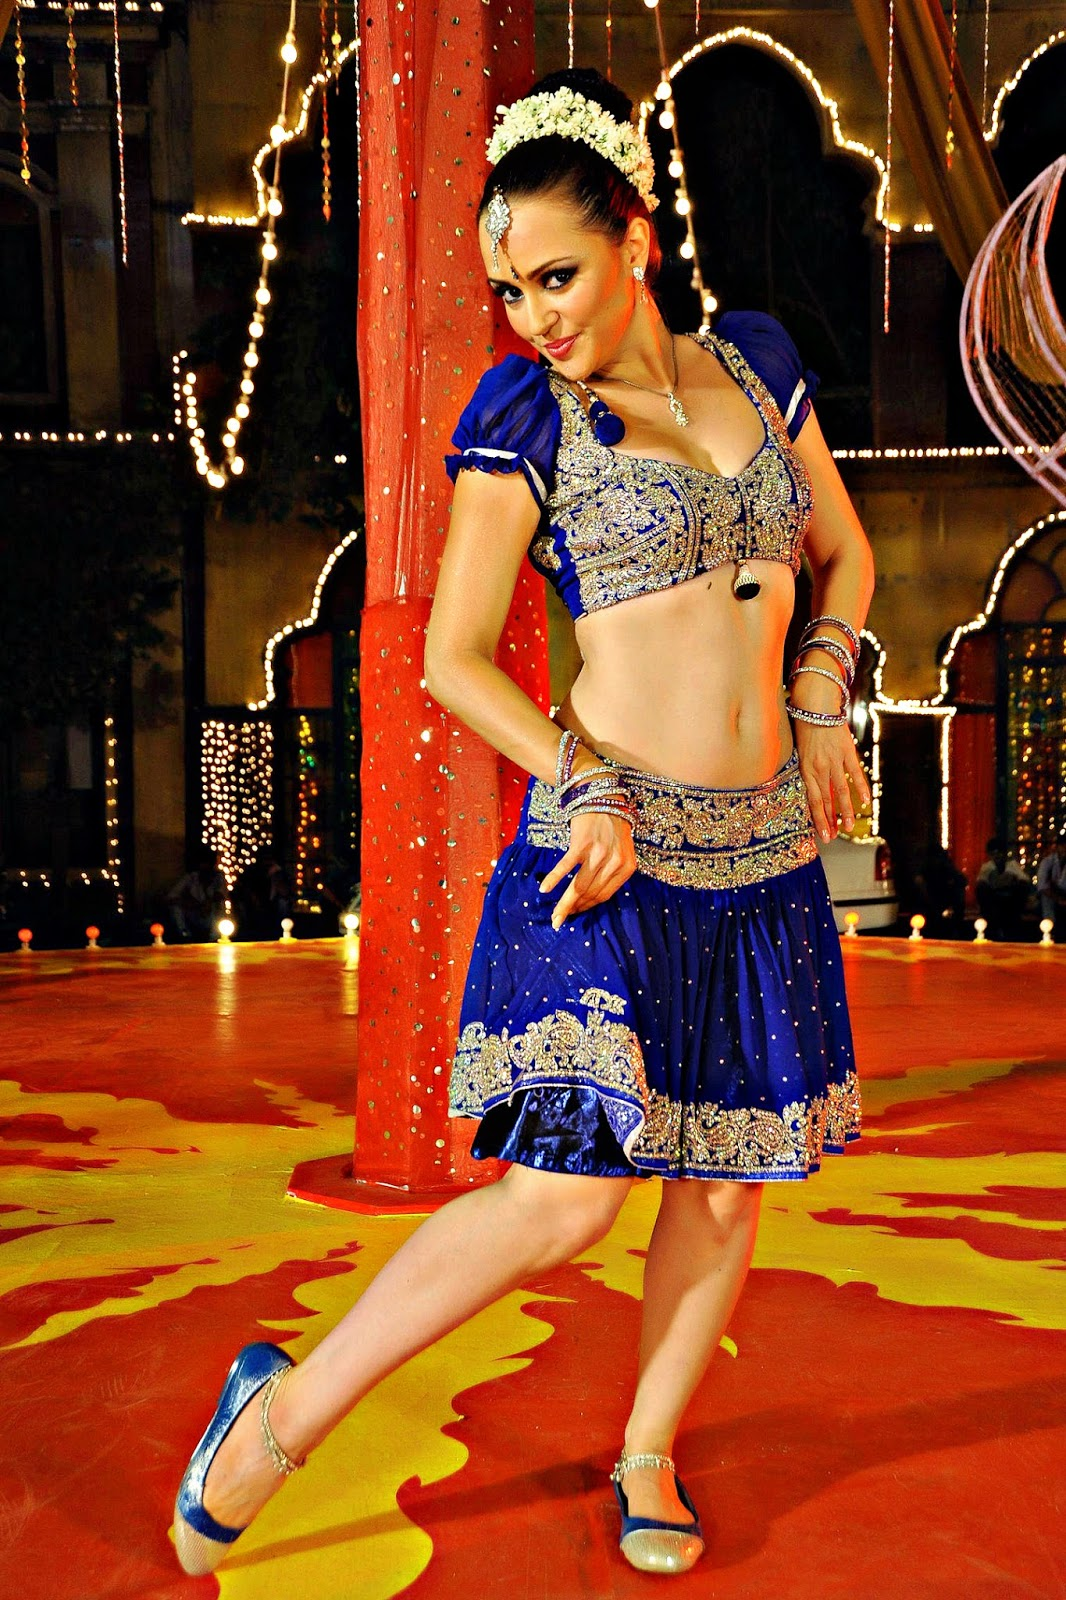 Item dance actress in blue short blose and short skirt hdr hot actress in item dance high quality digital image in hd no watermark photo gallery indian actress in telugu film hd stills online published thecheapjerseys Choice Image